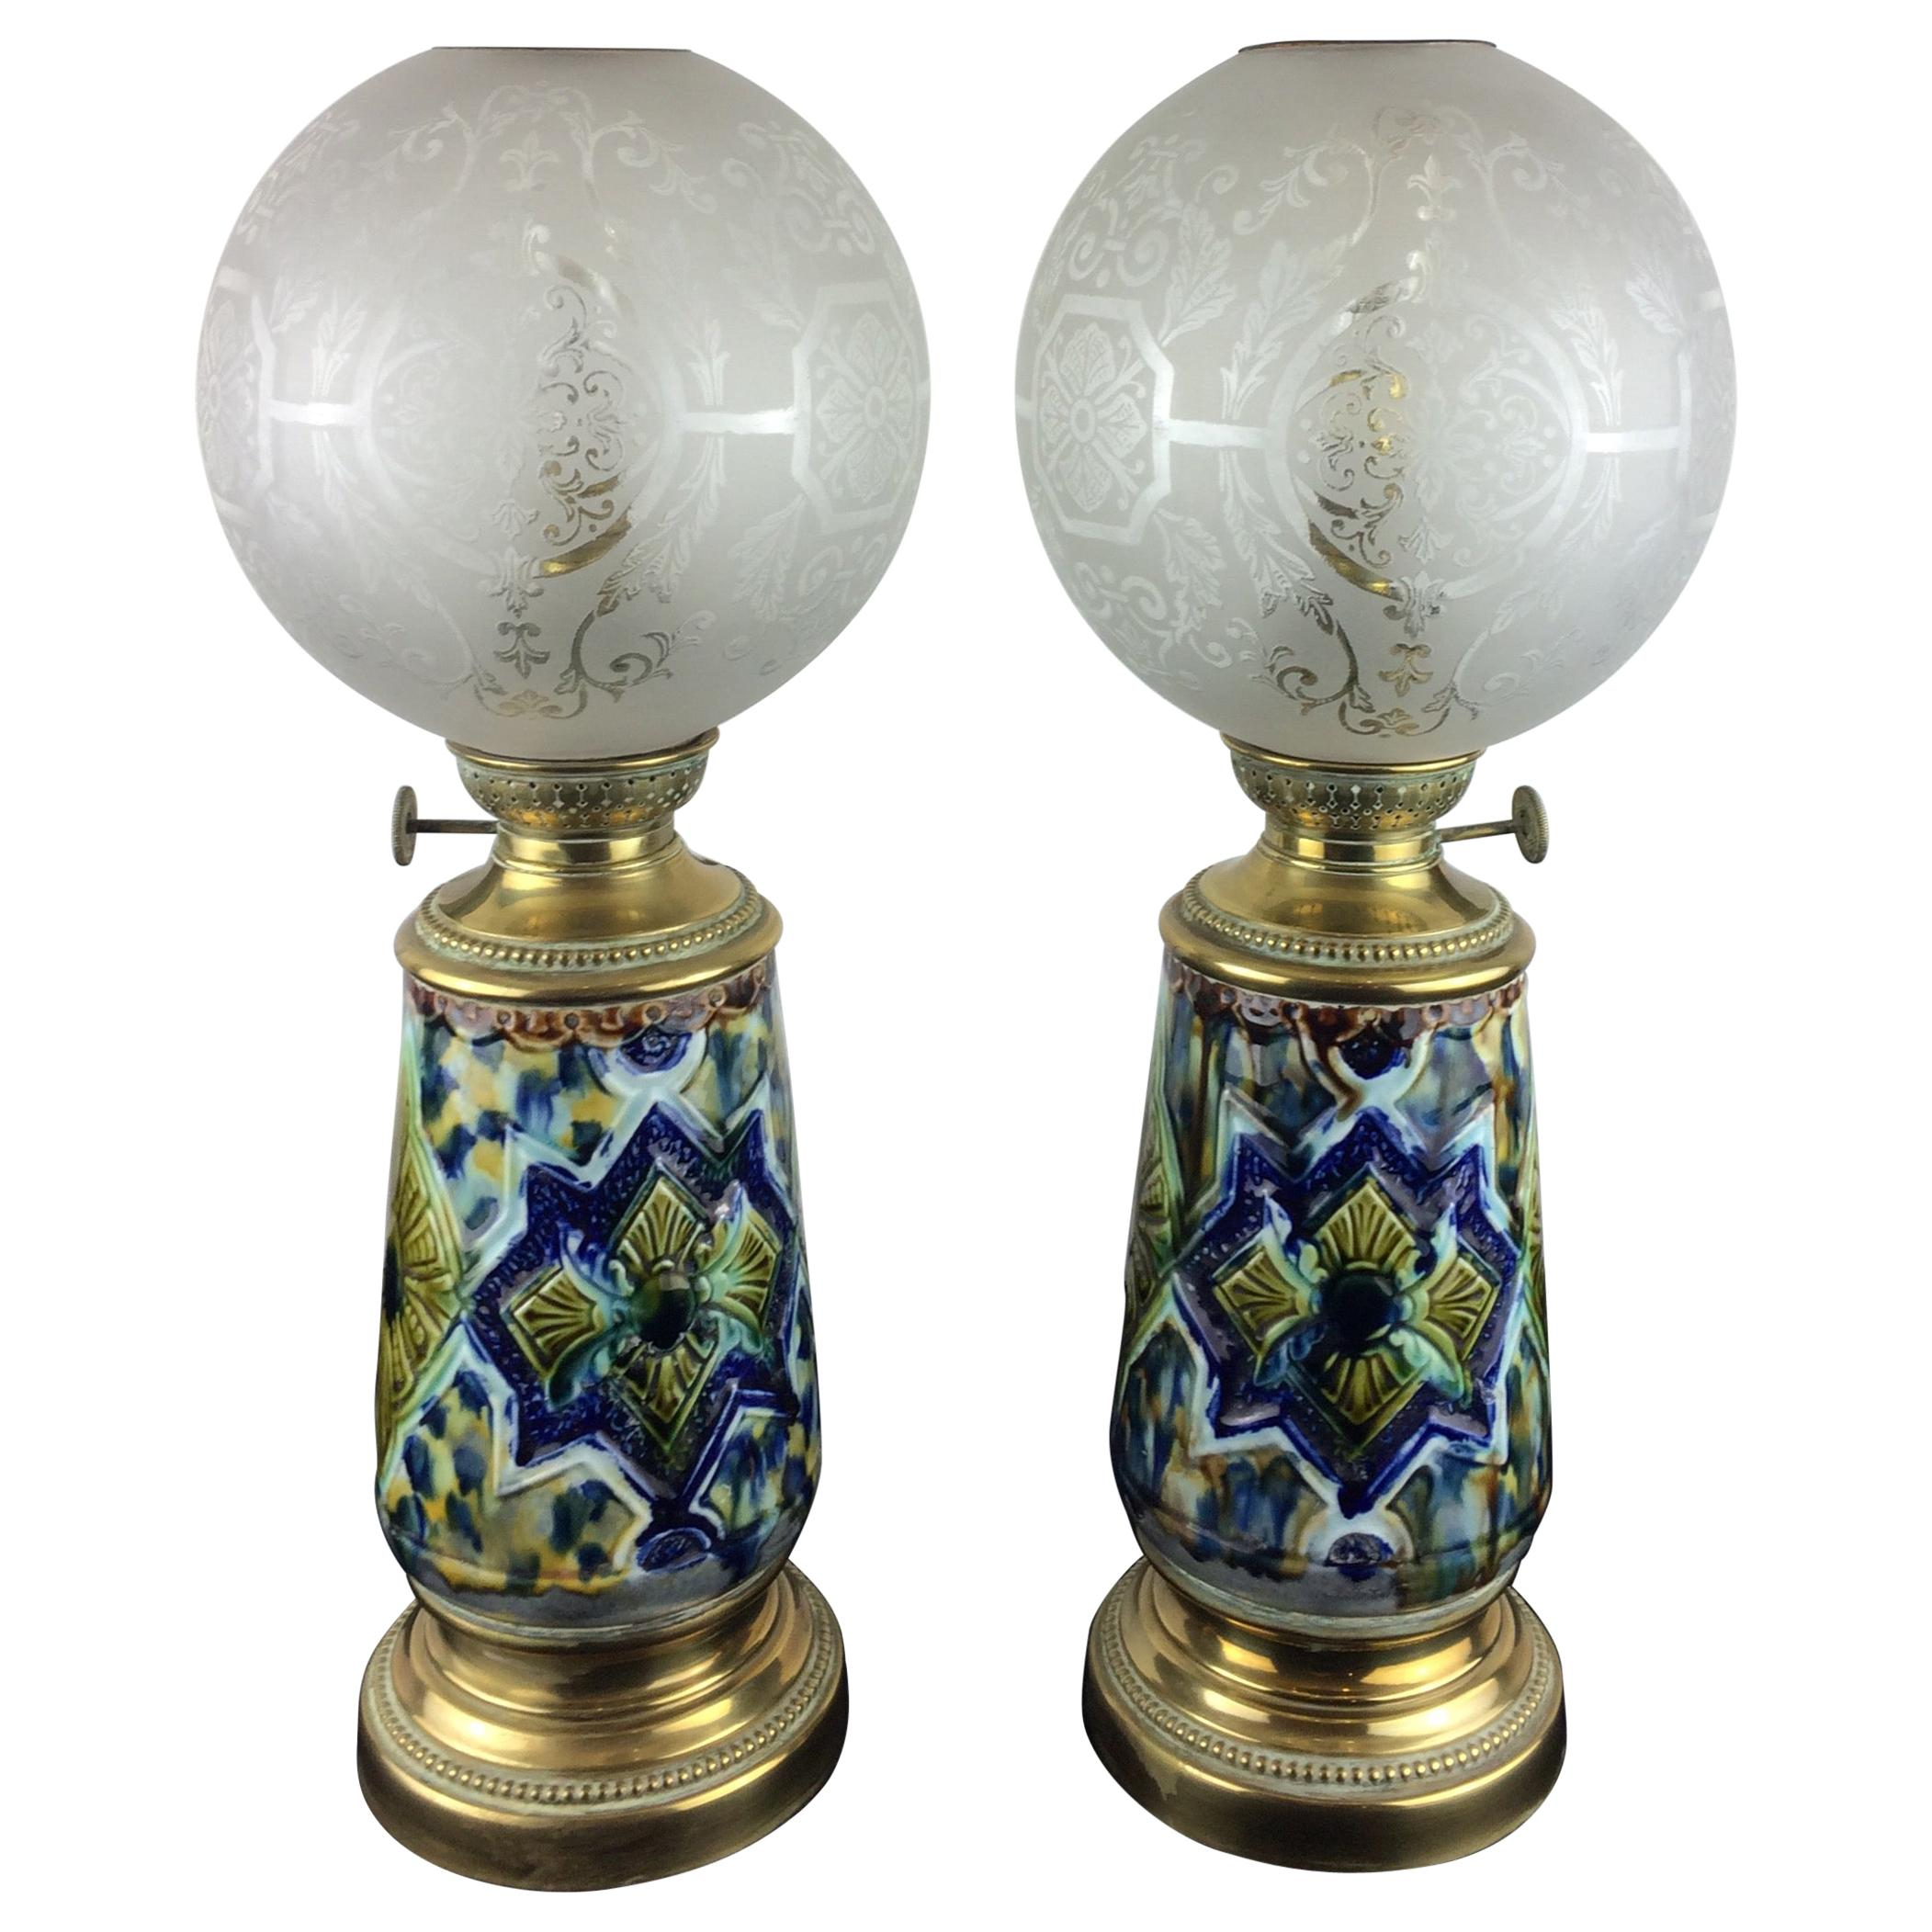 Pair of French 19th Century Napoleon III Brass & Porcelain Oil Lamps Electrified